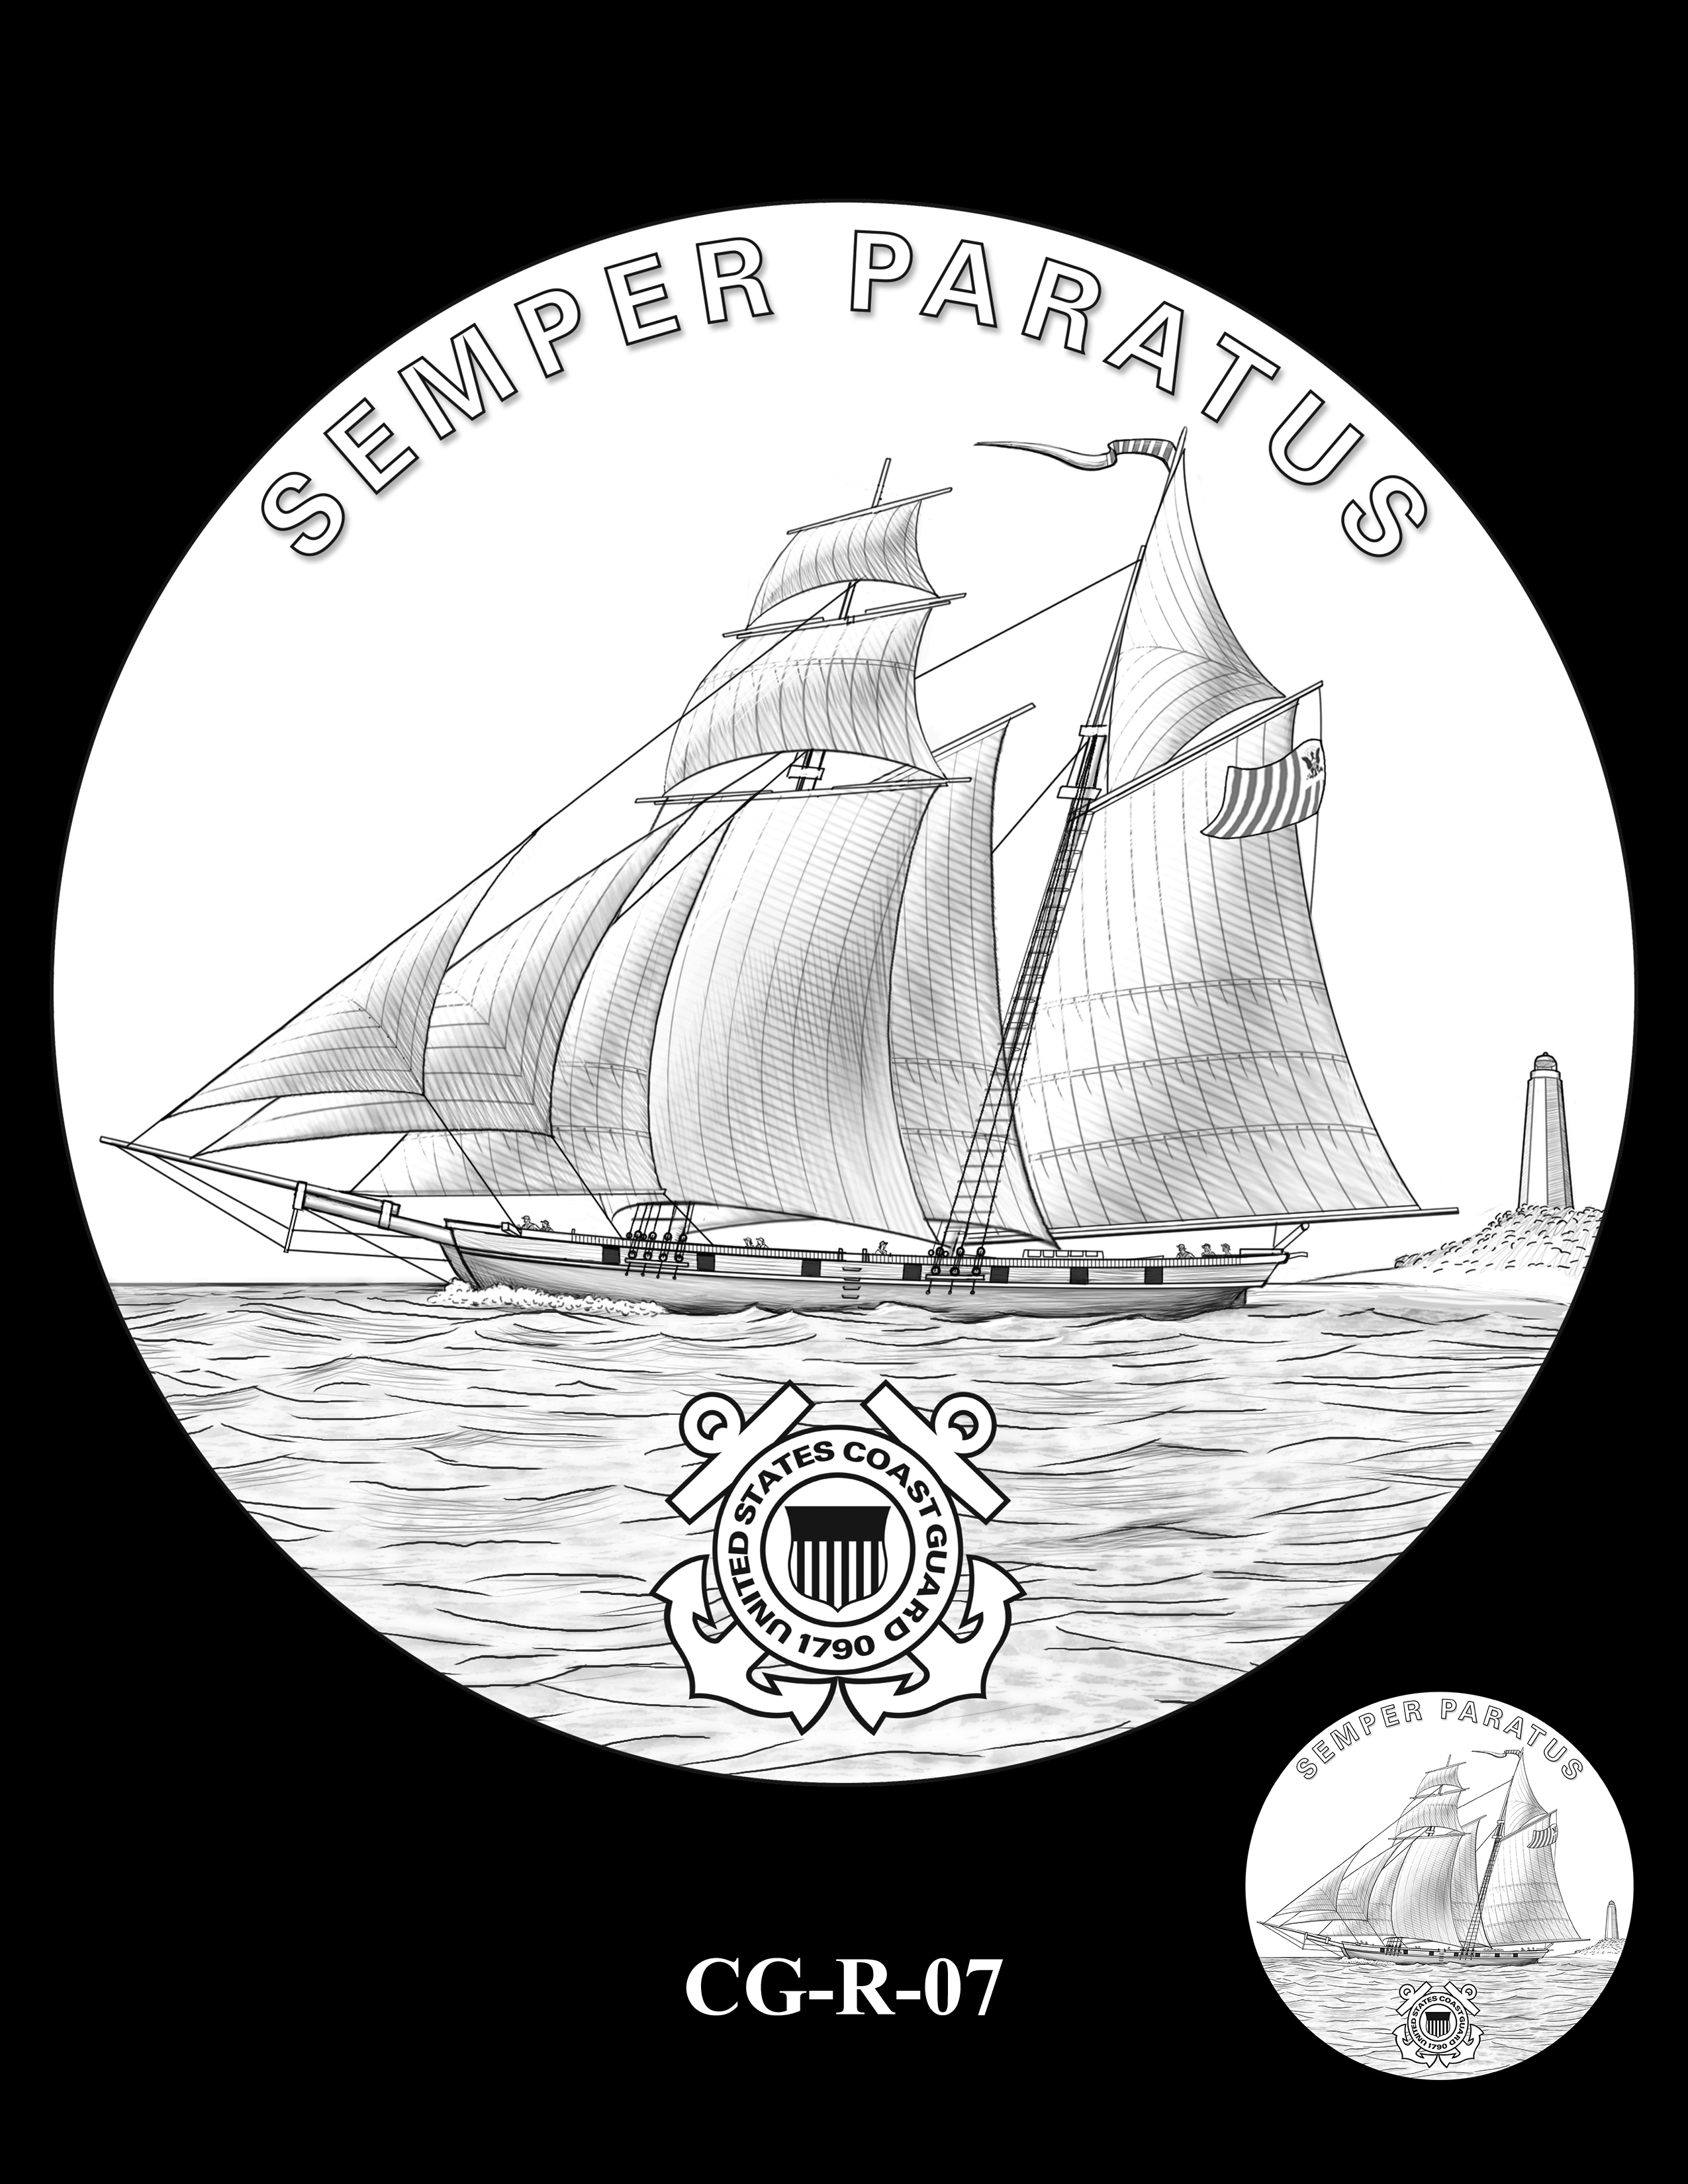 CG-R-07 -- Armed Forces Medal - Coast Guard